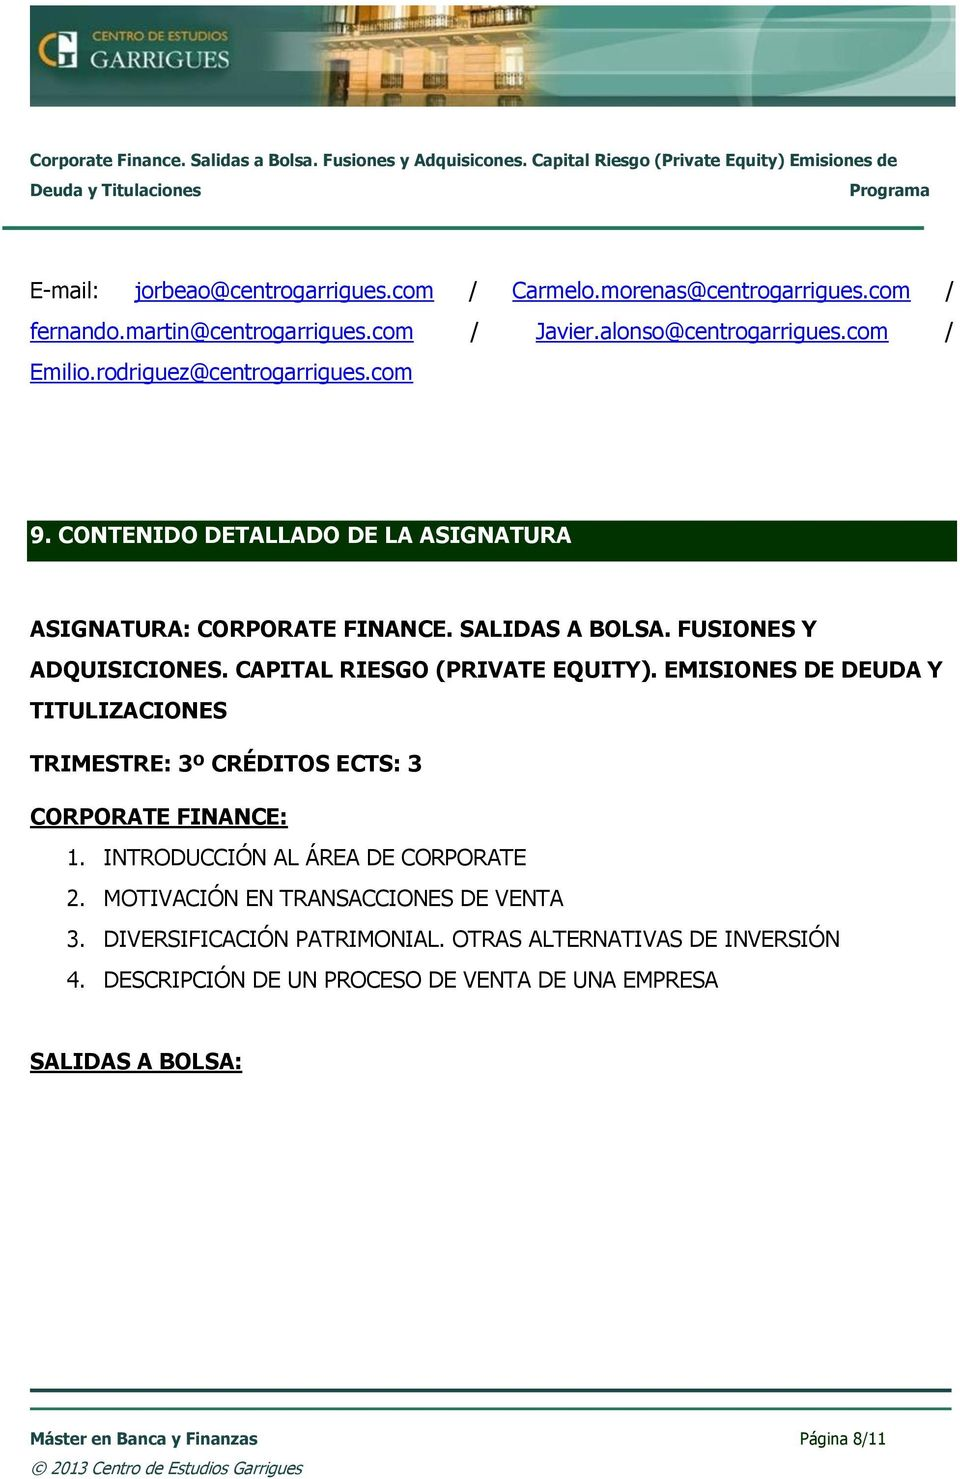 CAPITAL RIESGO (PRIVATE EQUITY). EMISIONES DE DEUDA Y TITULIZACIONES TRIMESTRE: 3º CRÉDITOS ECTS: 3 CORPORATE FINANCE: 1. INTRODUCCIÓN AL ÁREA DE CORPORATE 2.